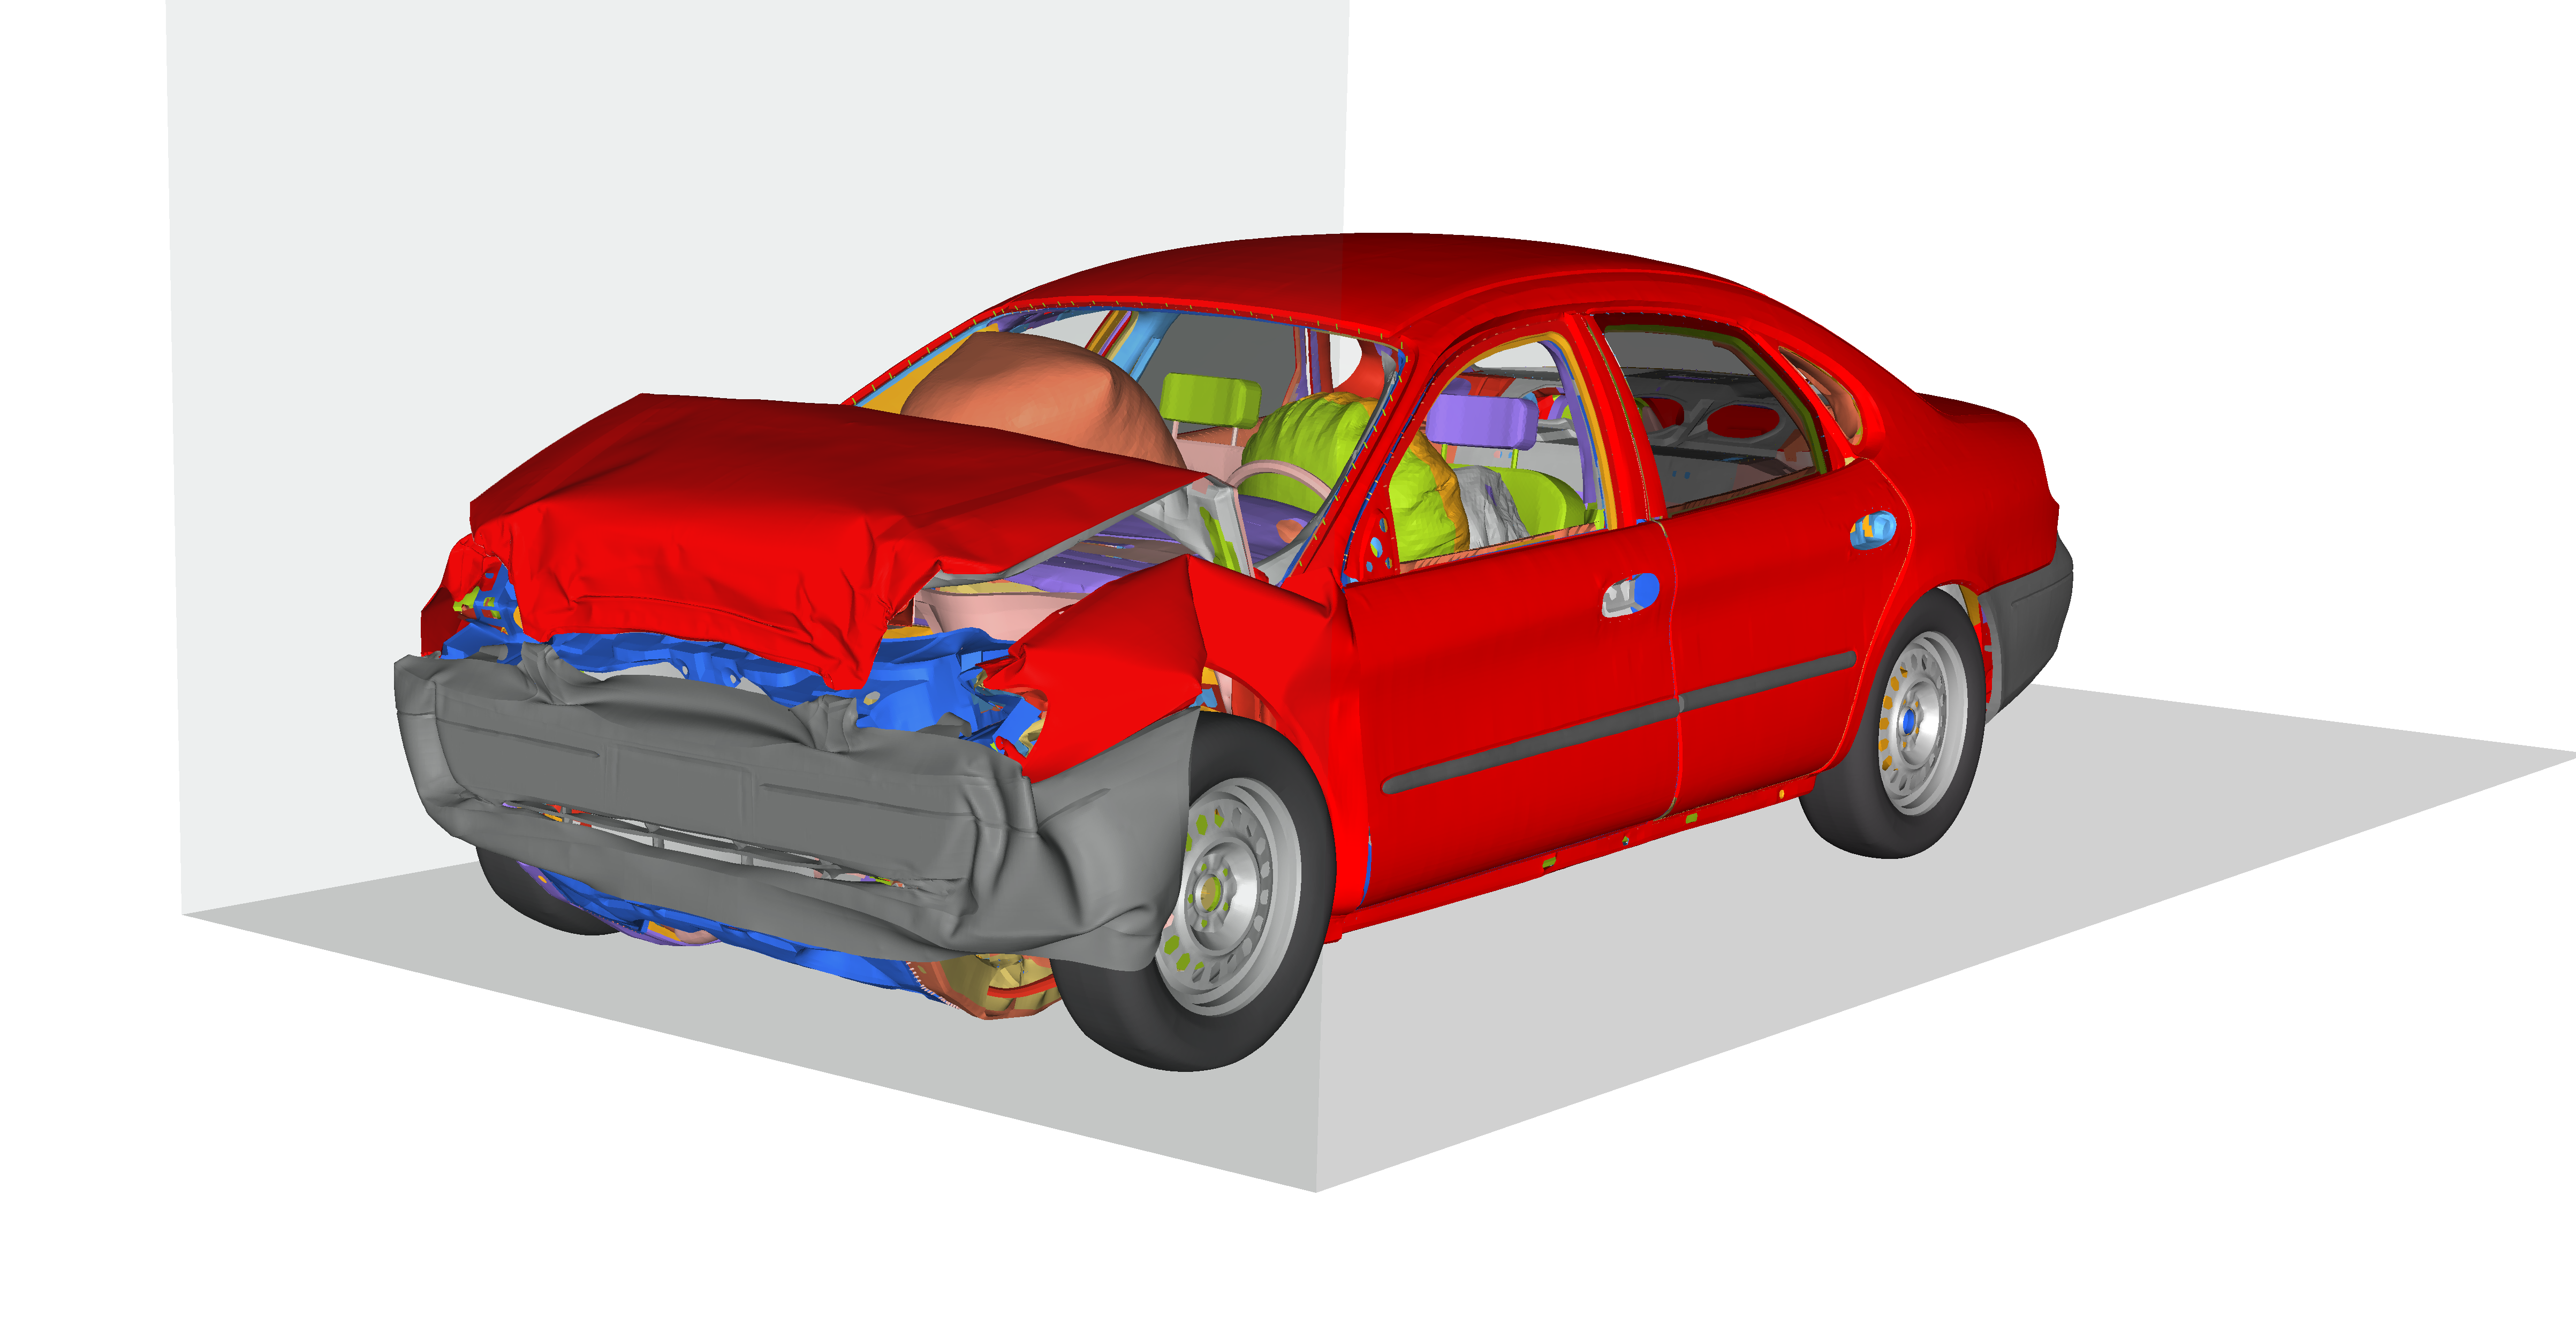 Webinar: Optimizing High-Fidelity Crash & Safety Simulation Performance